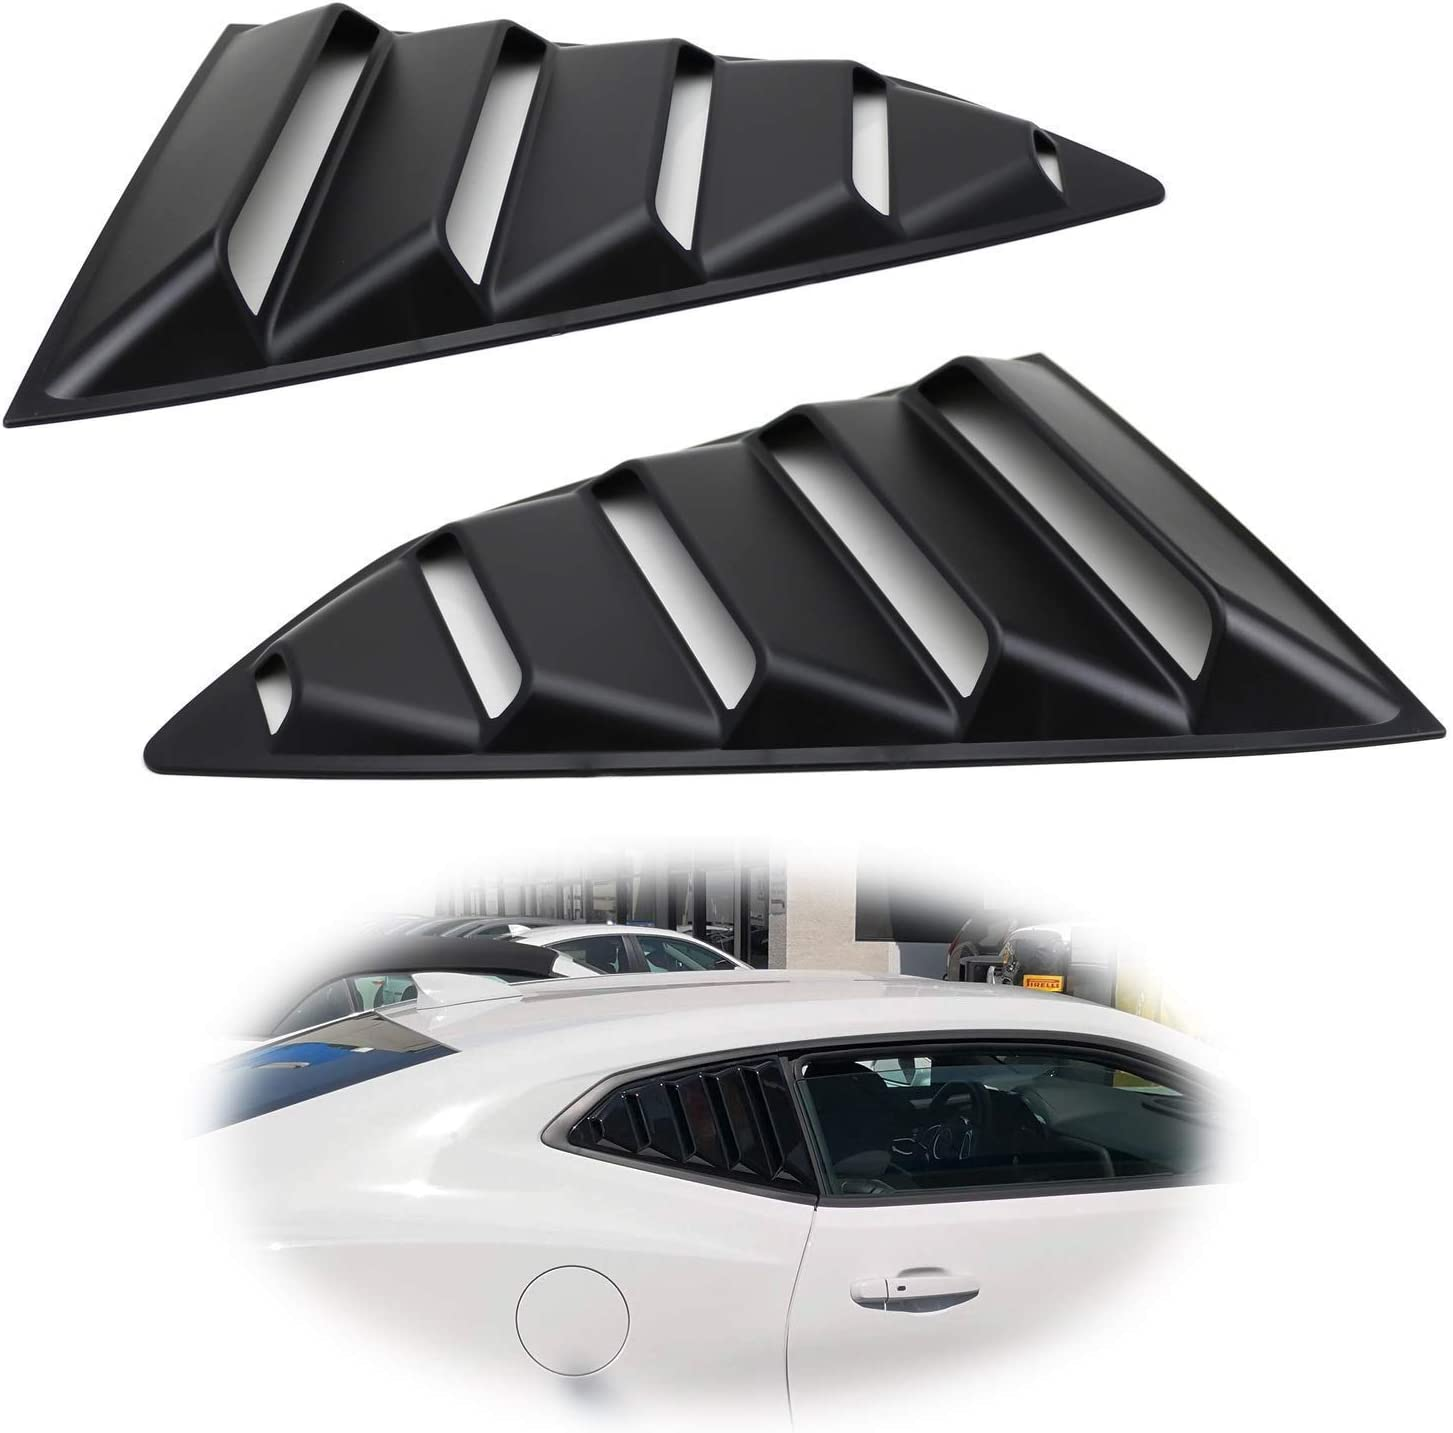 WARMAGIA Left//Right Black Finish Racing Style Rear Side Window Scoop Air Vent//Louver Shades Compatible with 2016-up Honda Civic Sedan for 10th Gen Civic